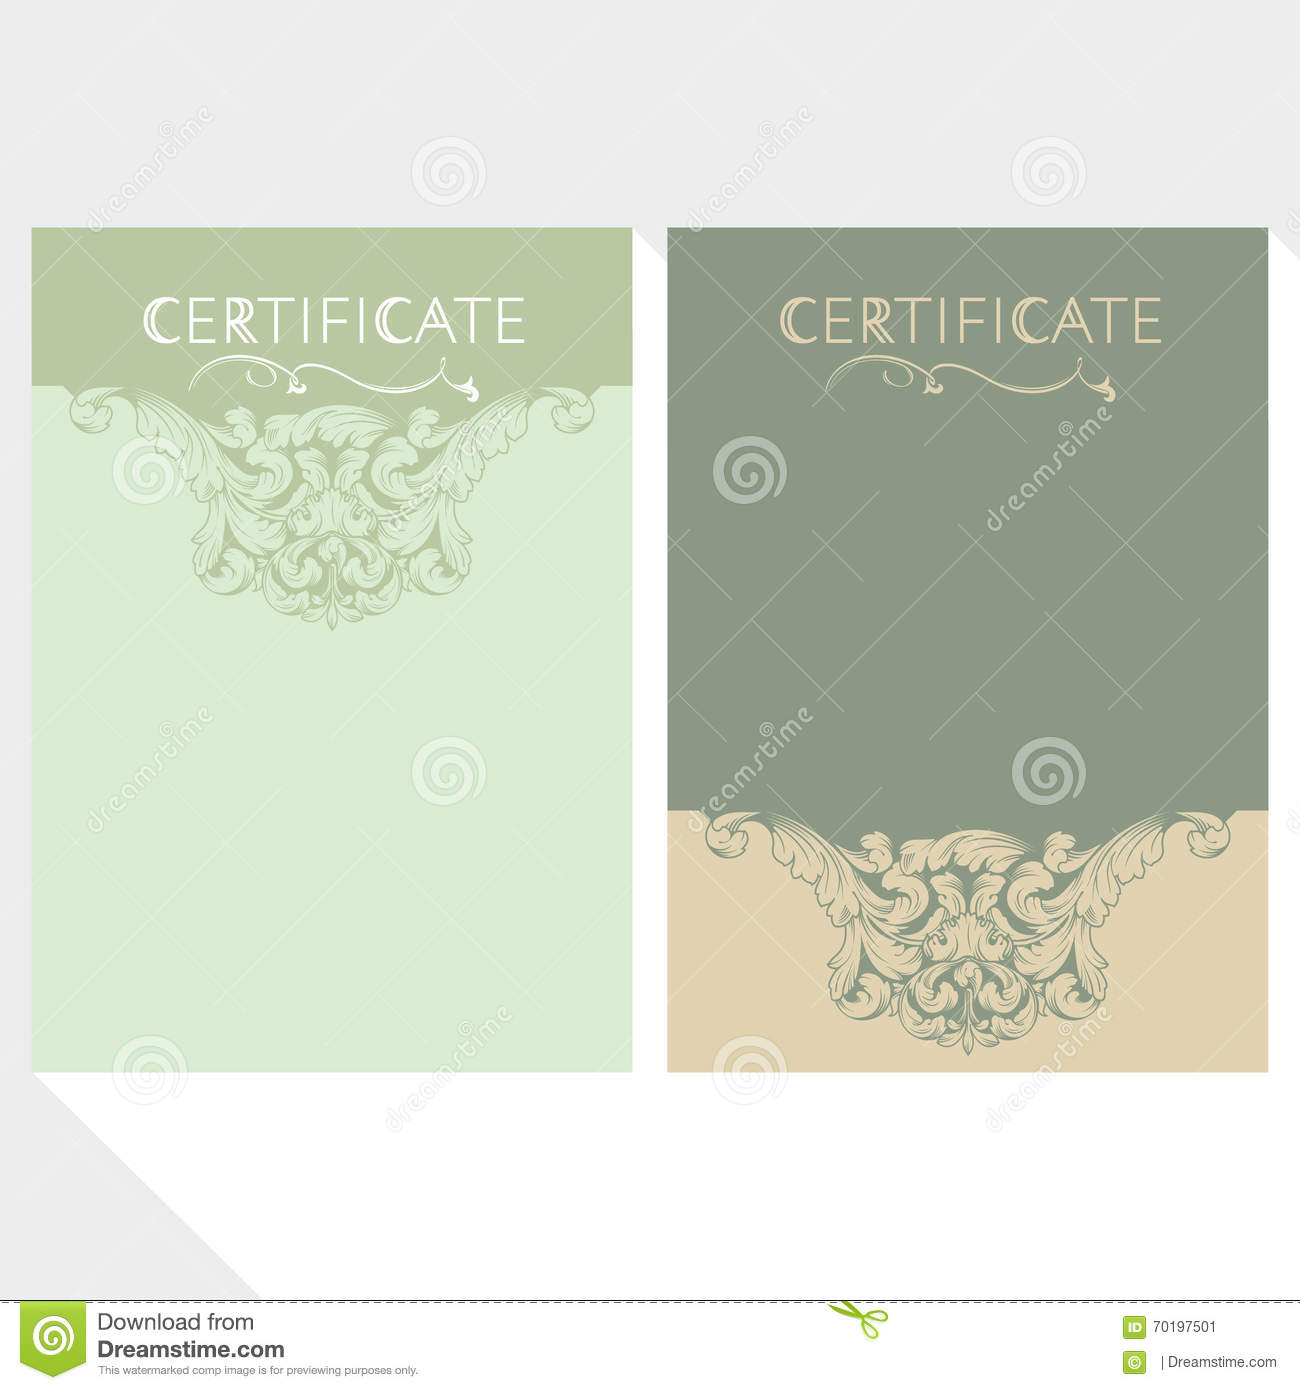 Diploma and Certificate design template